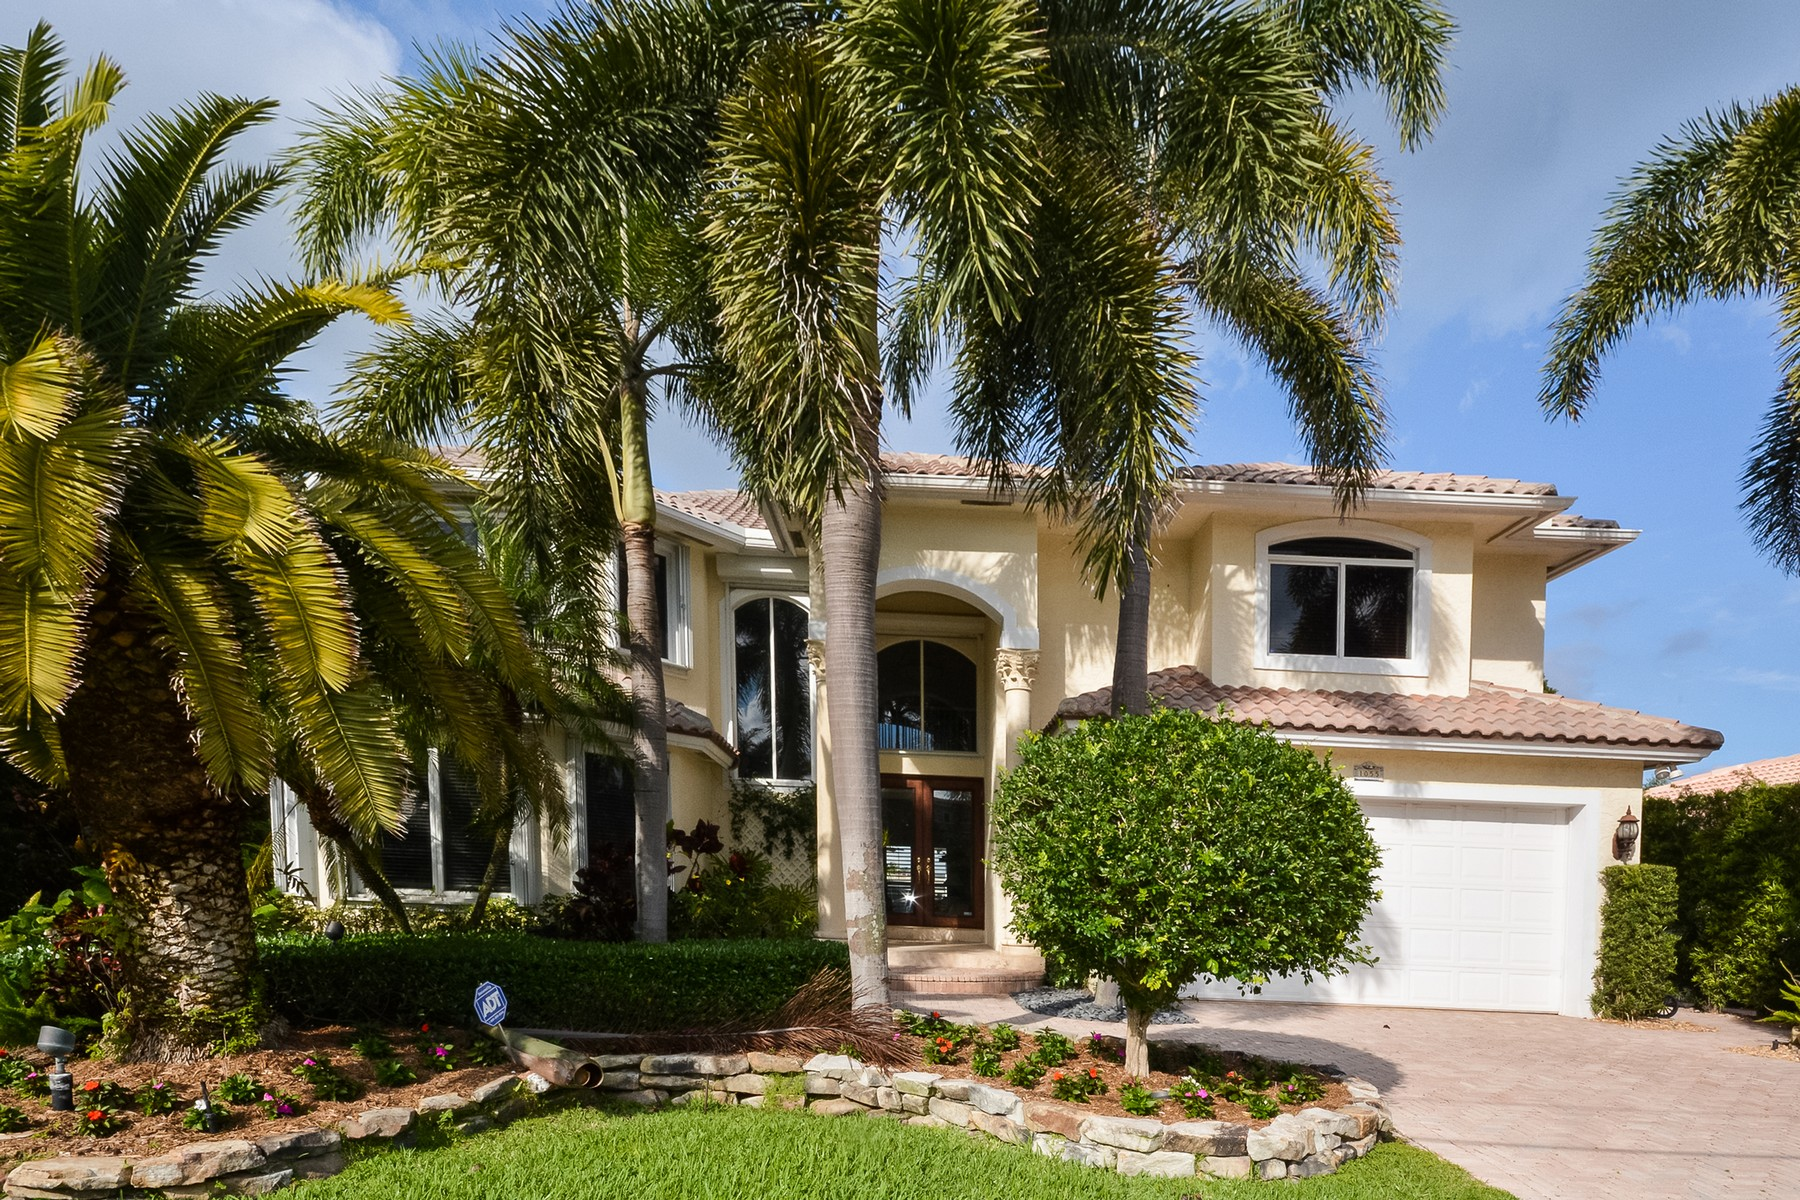 Property For Sale at 1055 Del Harbour Dr , Delray Beach, FL 33483